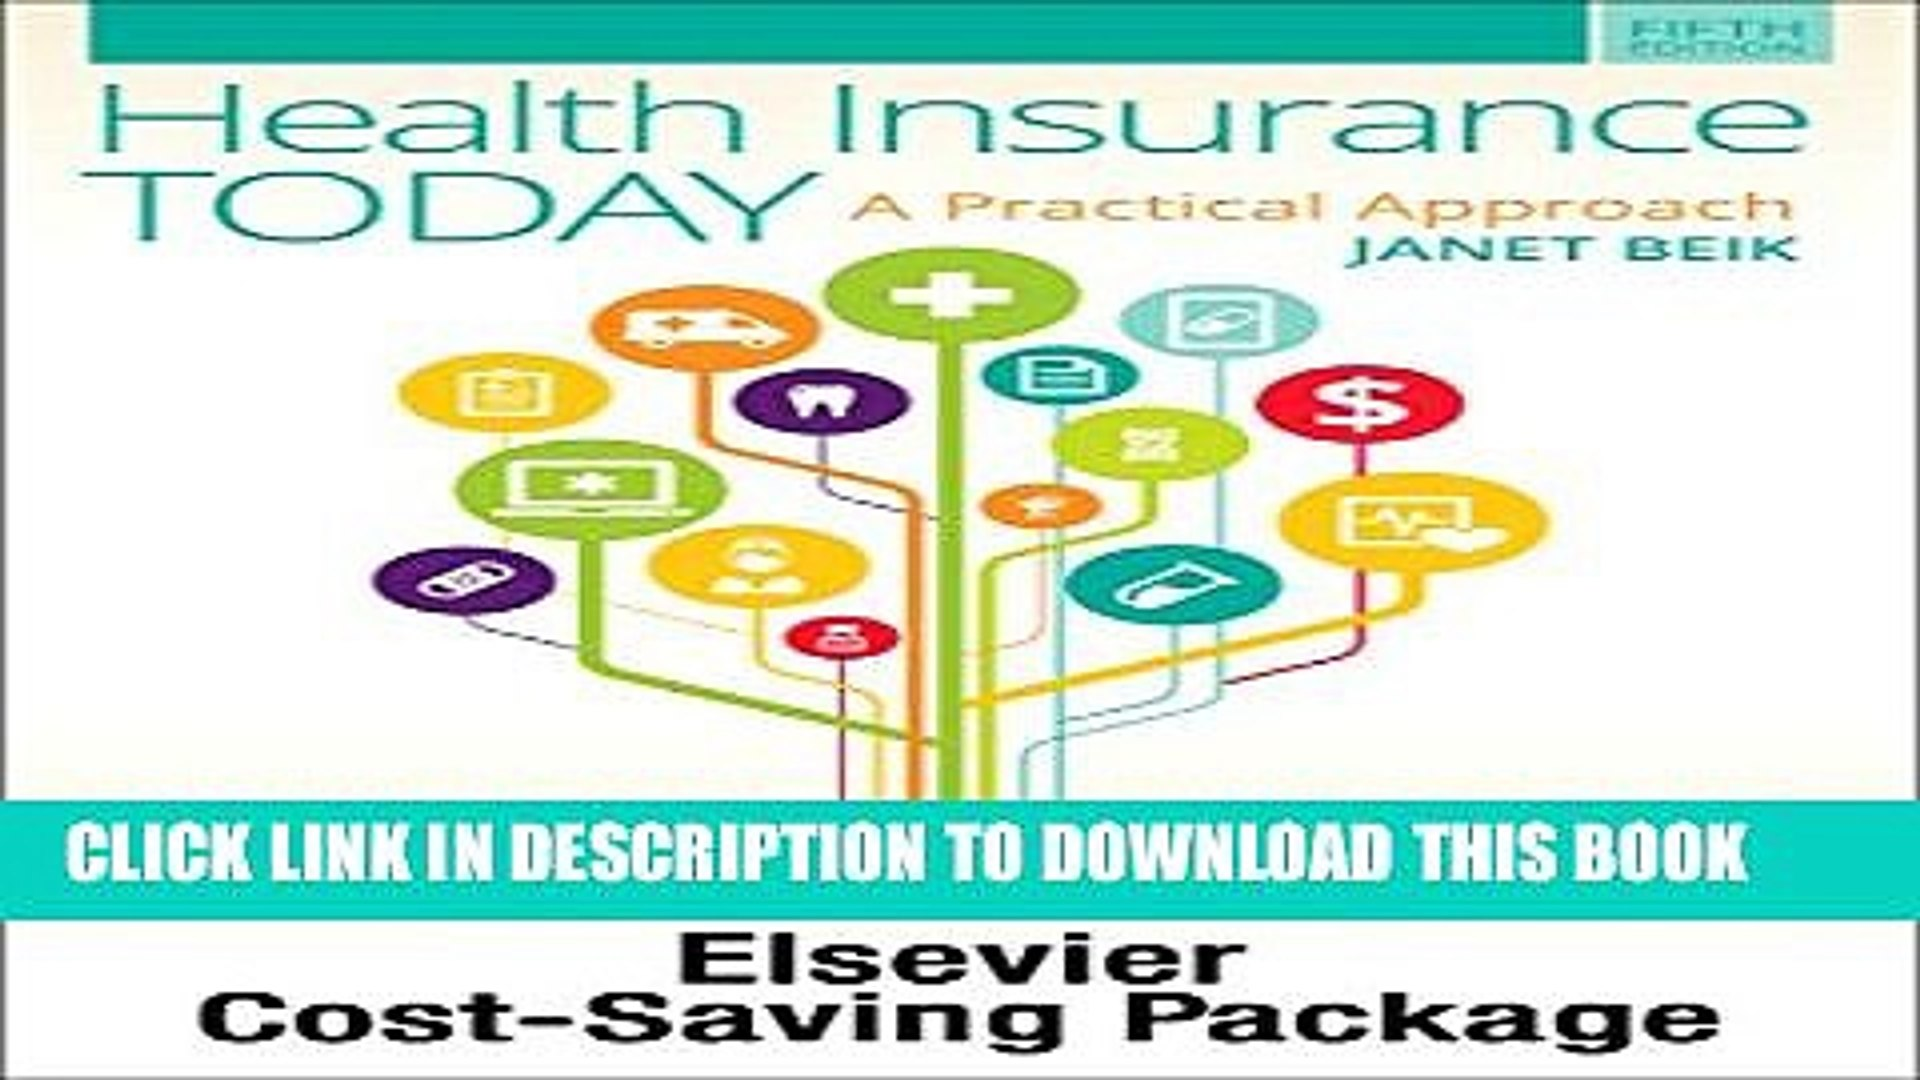 Collection Book Medical Insurance Online for Health Insurance Today (Access Code, Textbook and